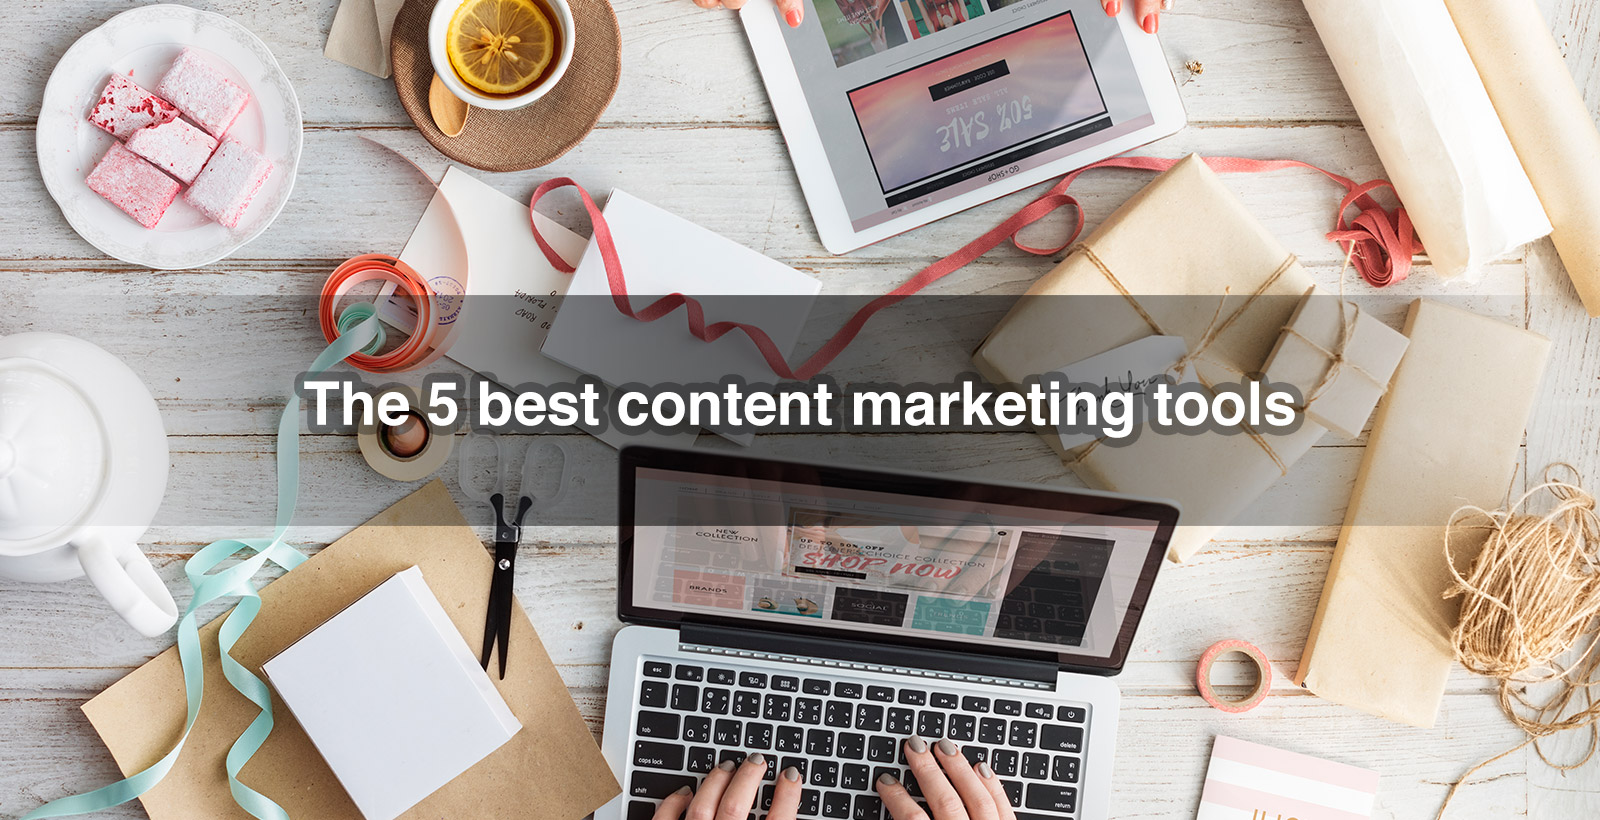 The 5 best content marketing tools